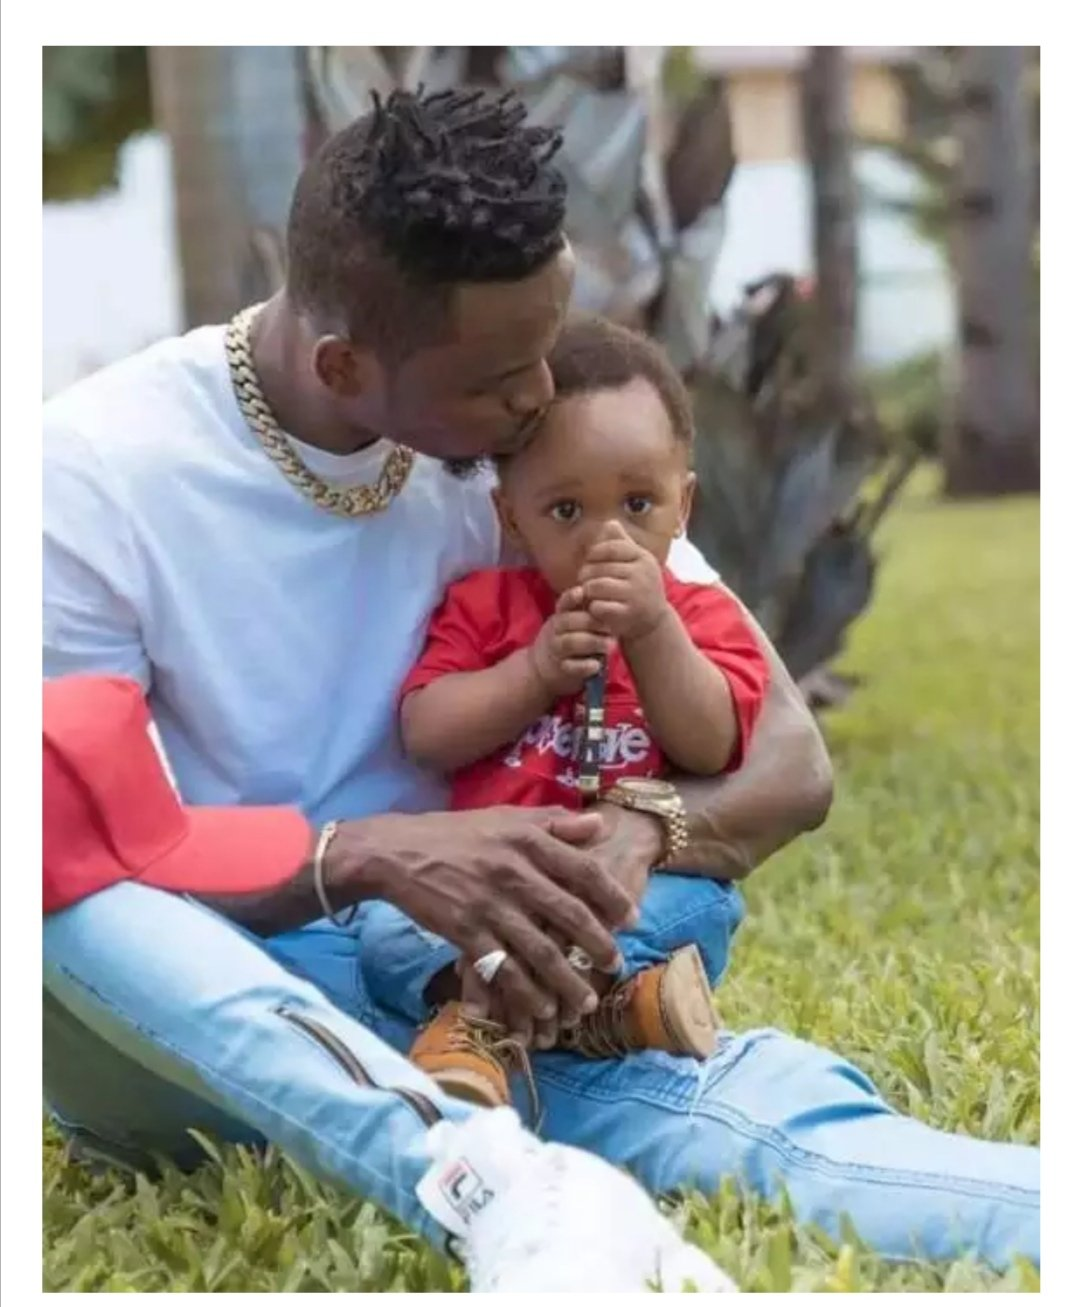 Diamond and his son Dylan.